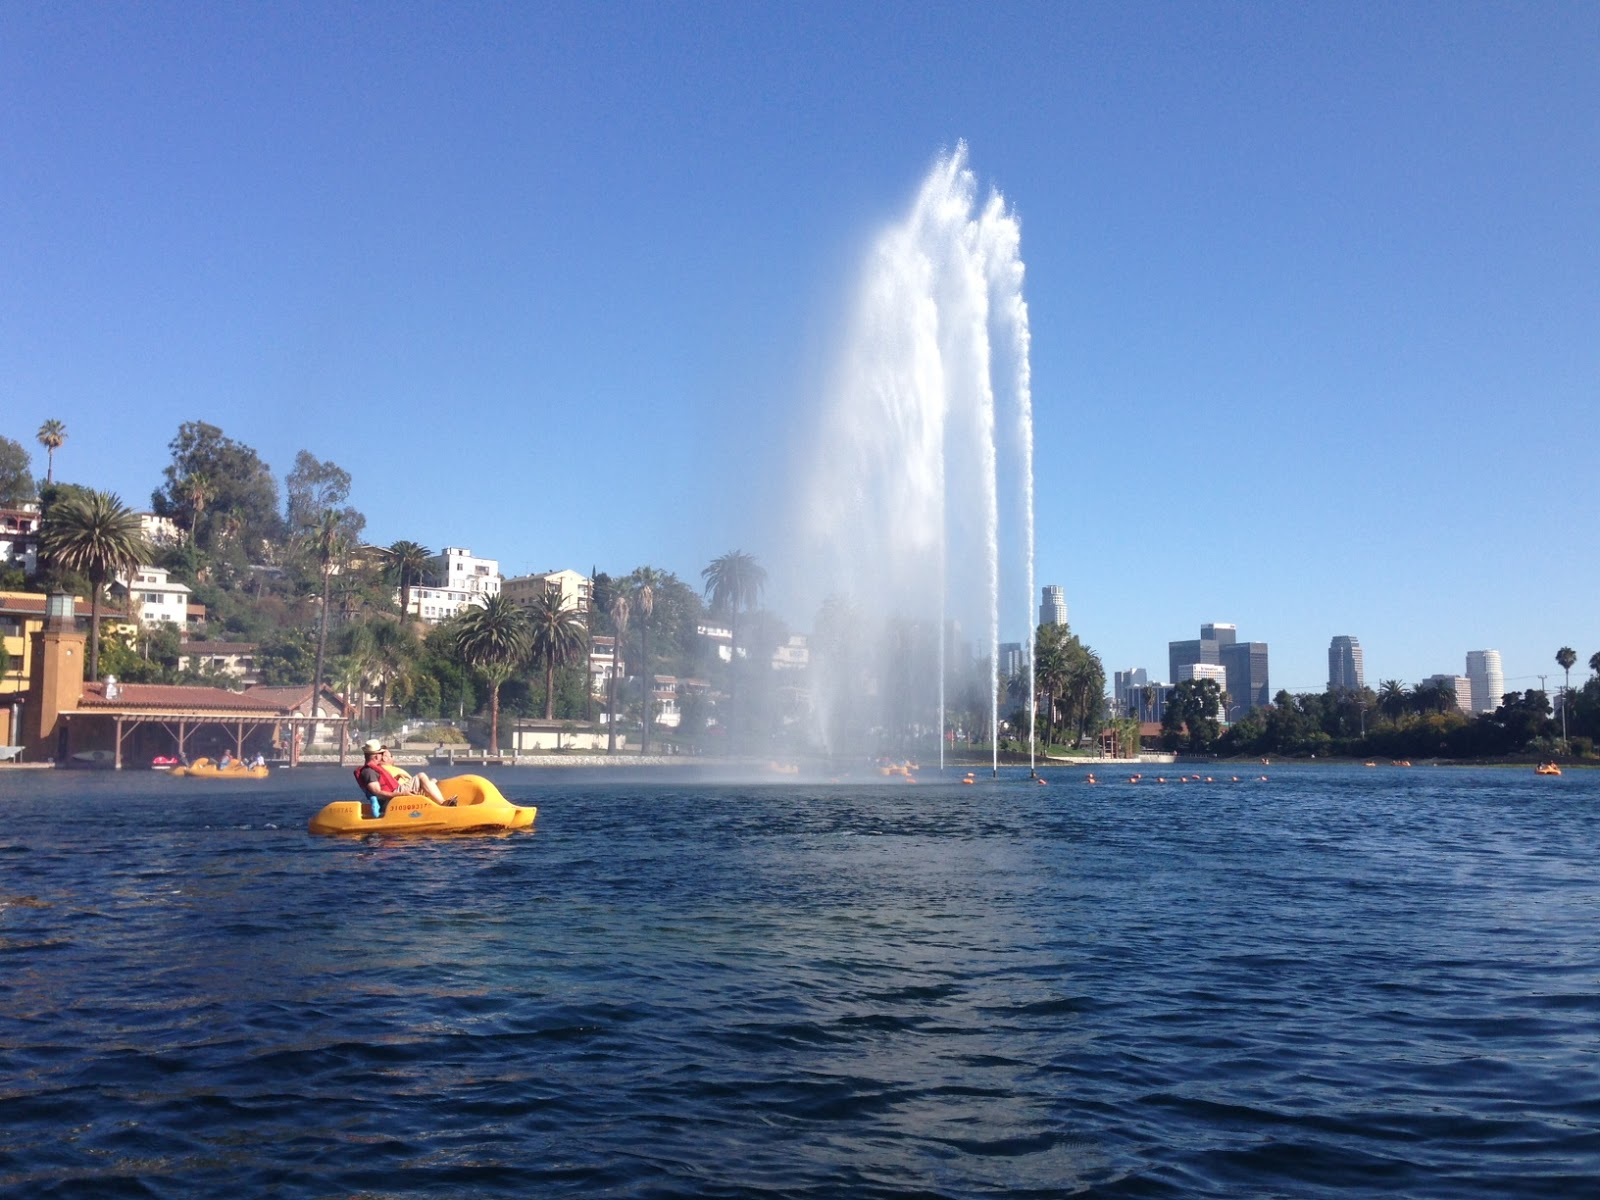 Hot spring spots in la to take your date gentlemens guide la for Lake fishing near los angeles